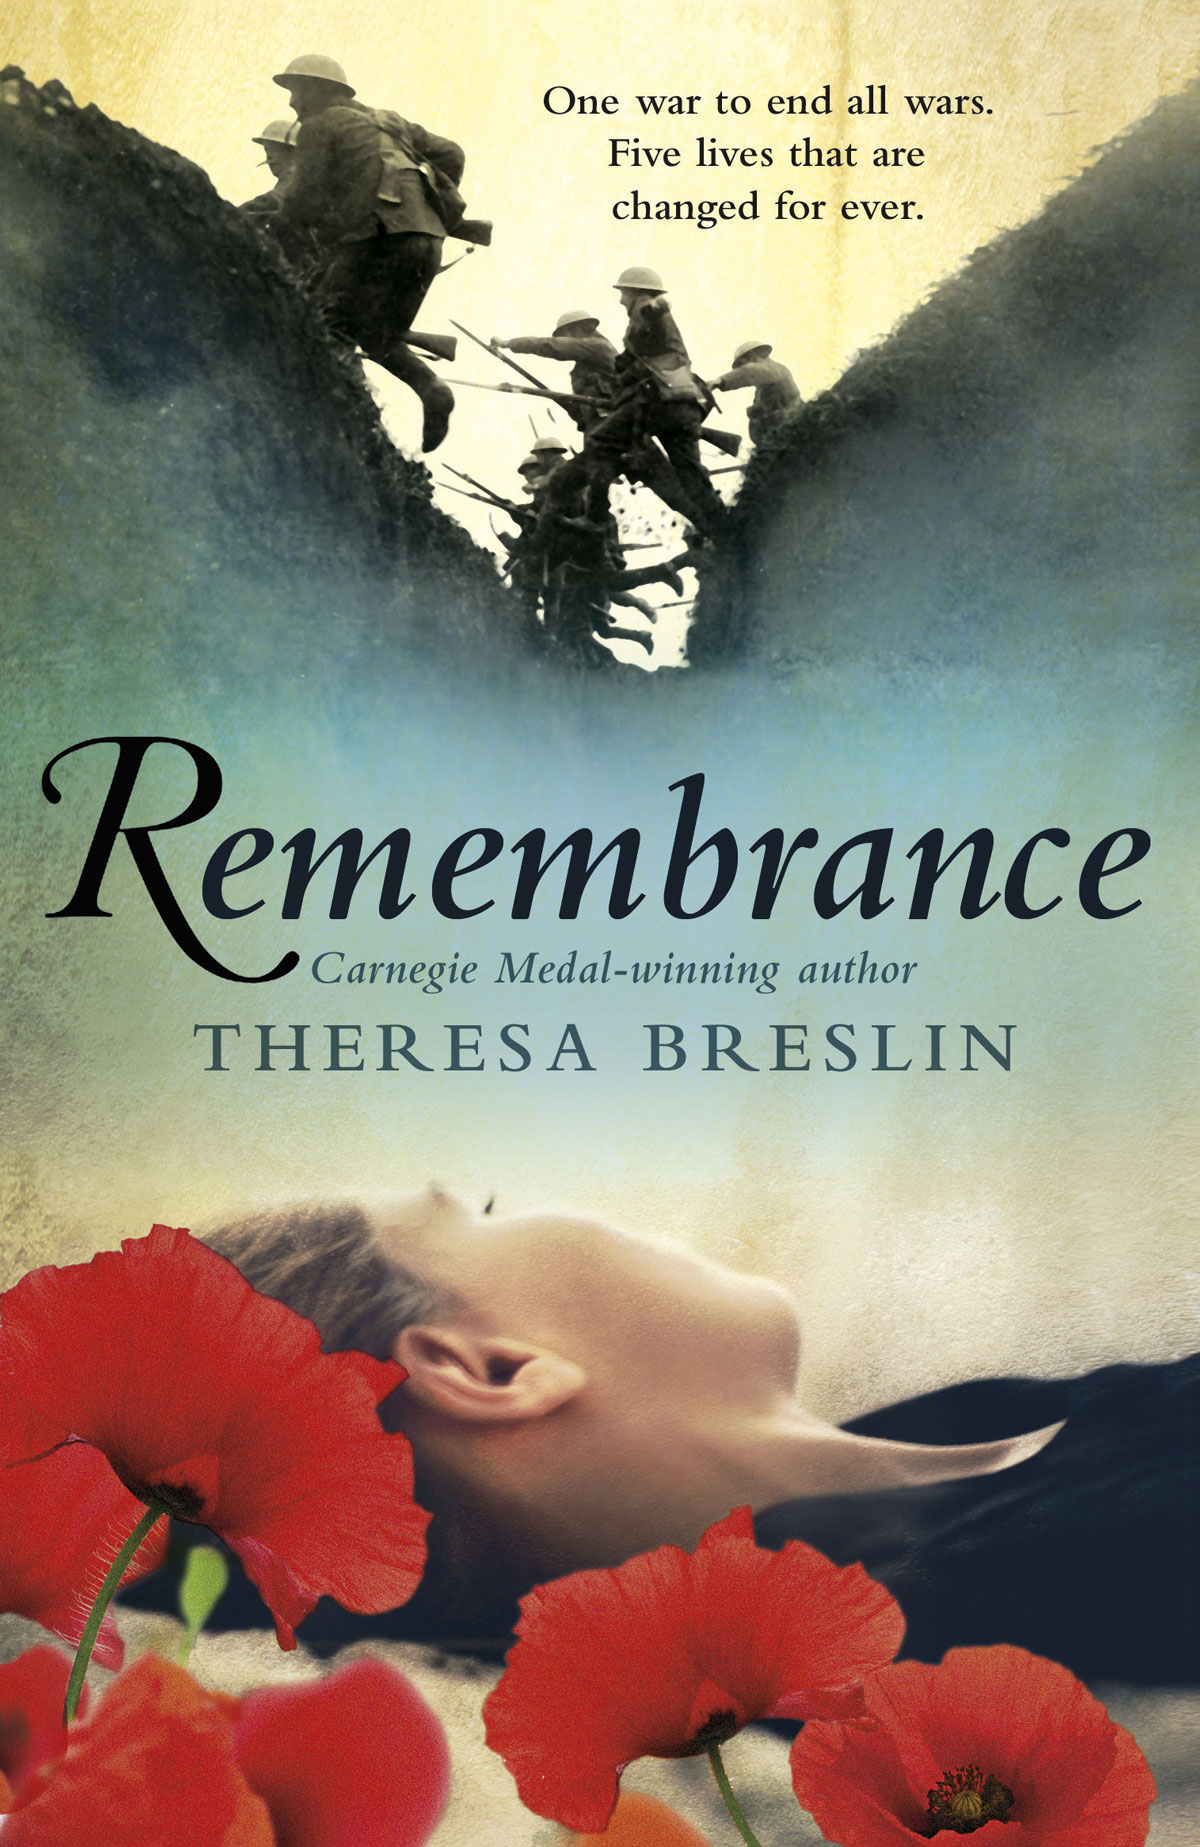 Remembrance book and war